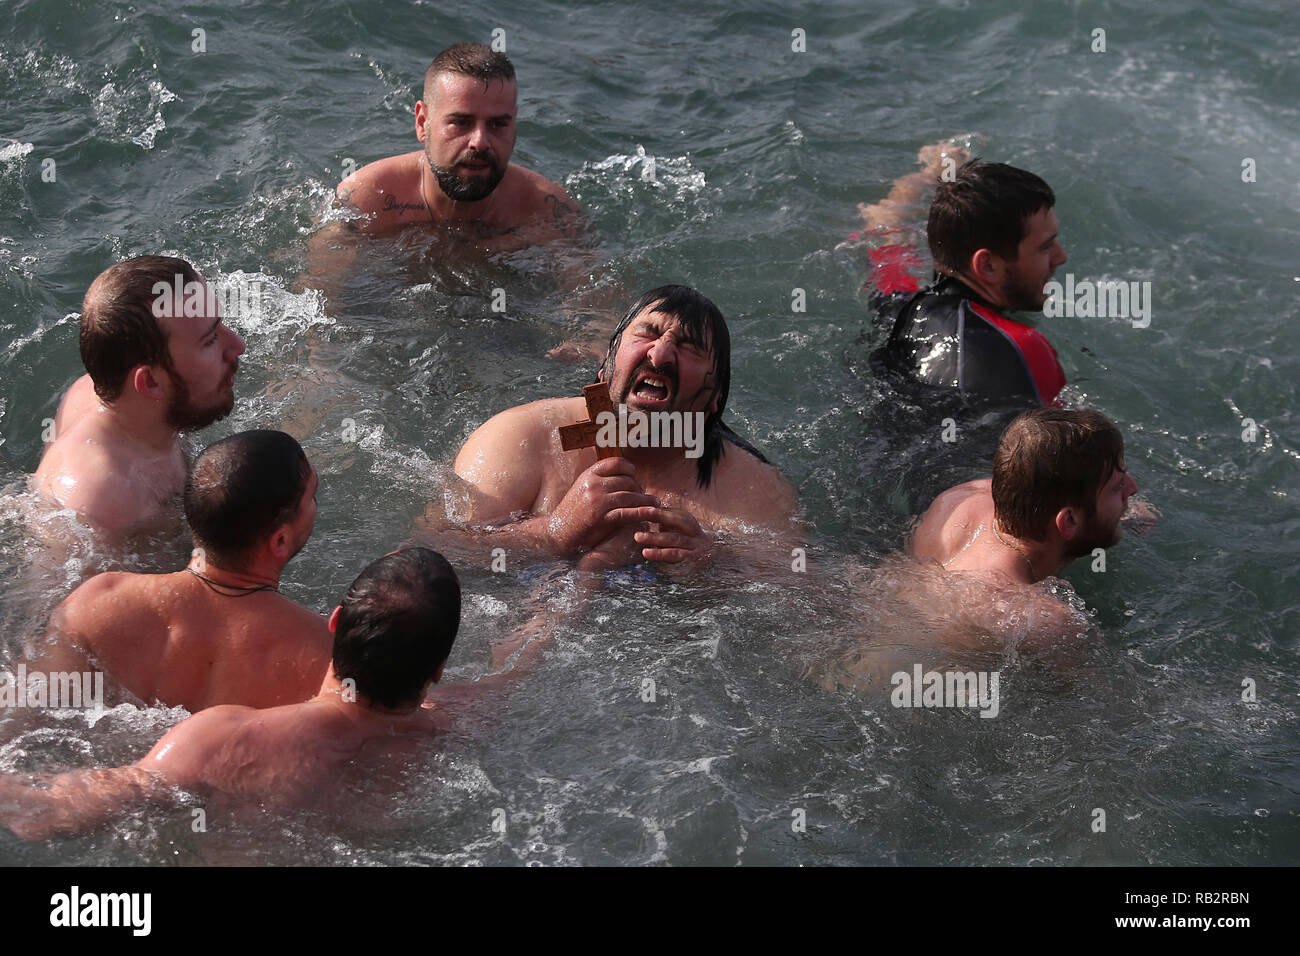 Thessaloniki, Greece. 6th Jan 2019. A man reacts after catching a wooden cross during an Epiphany water blessing ceremony at the northern Greek city of Thessaloniki. This ceremony marks the Epiphany Day celebrated every year in Greece as Christian Orthodox priests throw a cross into the water and swimmers race to retrieve it. Credit: Giannis Papanikos/ZUMA Wire/Alamy Live News Credit: ZUMA Press, Inc./Alamy Live News - Stock Image